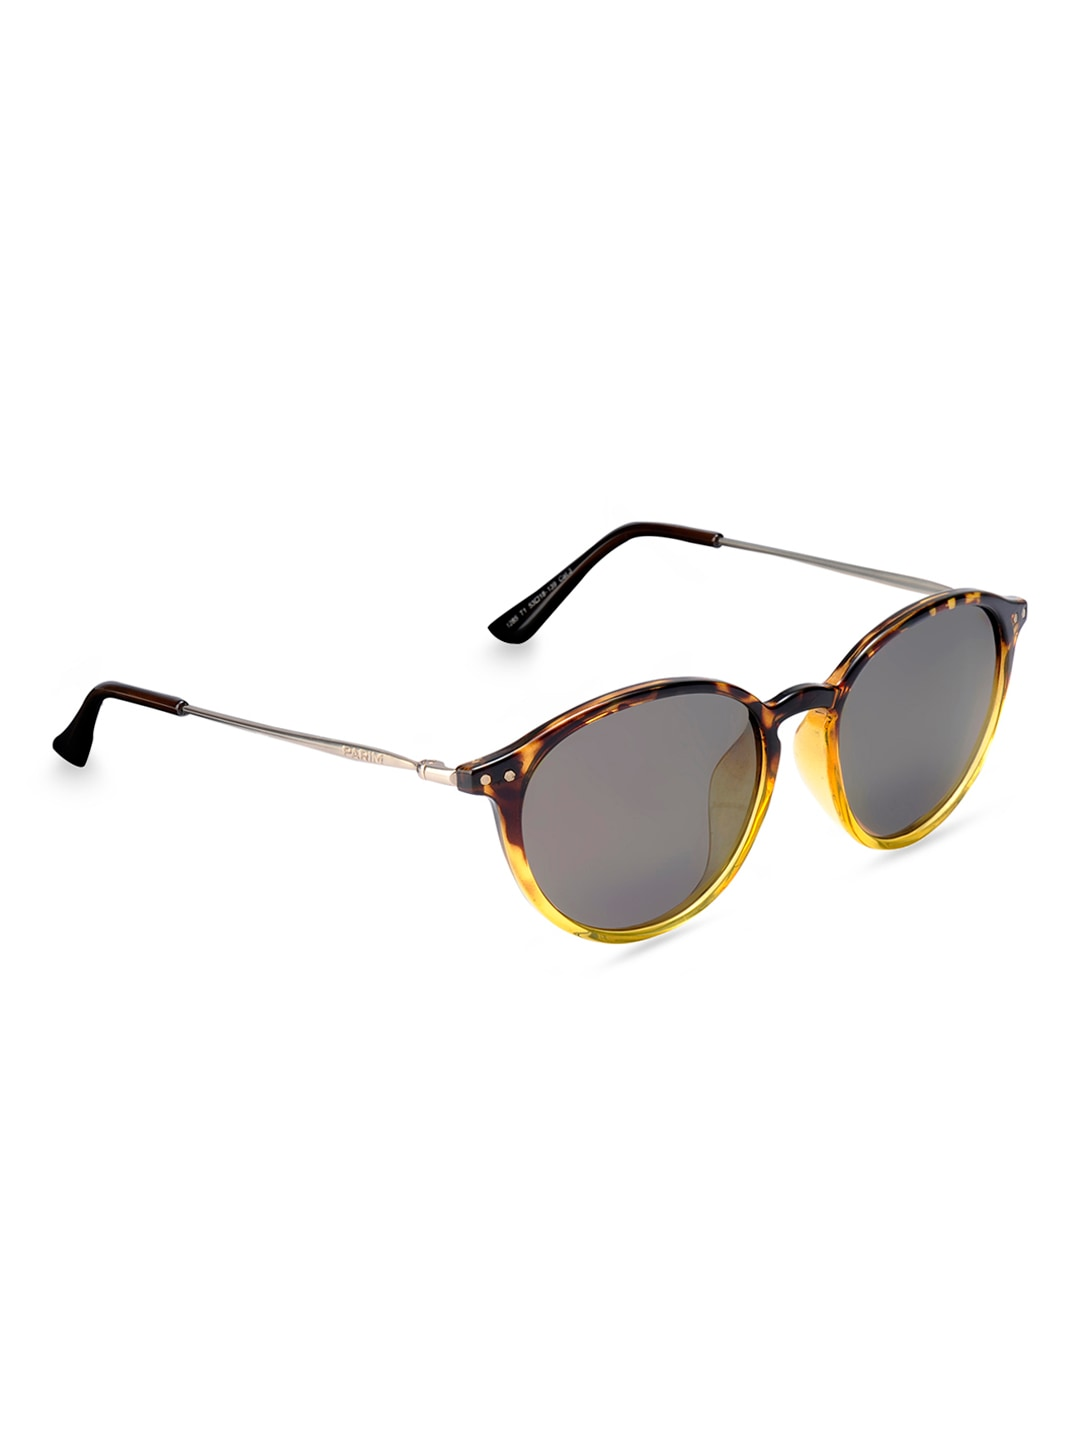 aed1d429827 Sunglasses - Buy Shades for Men and Women Online in India